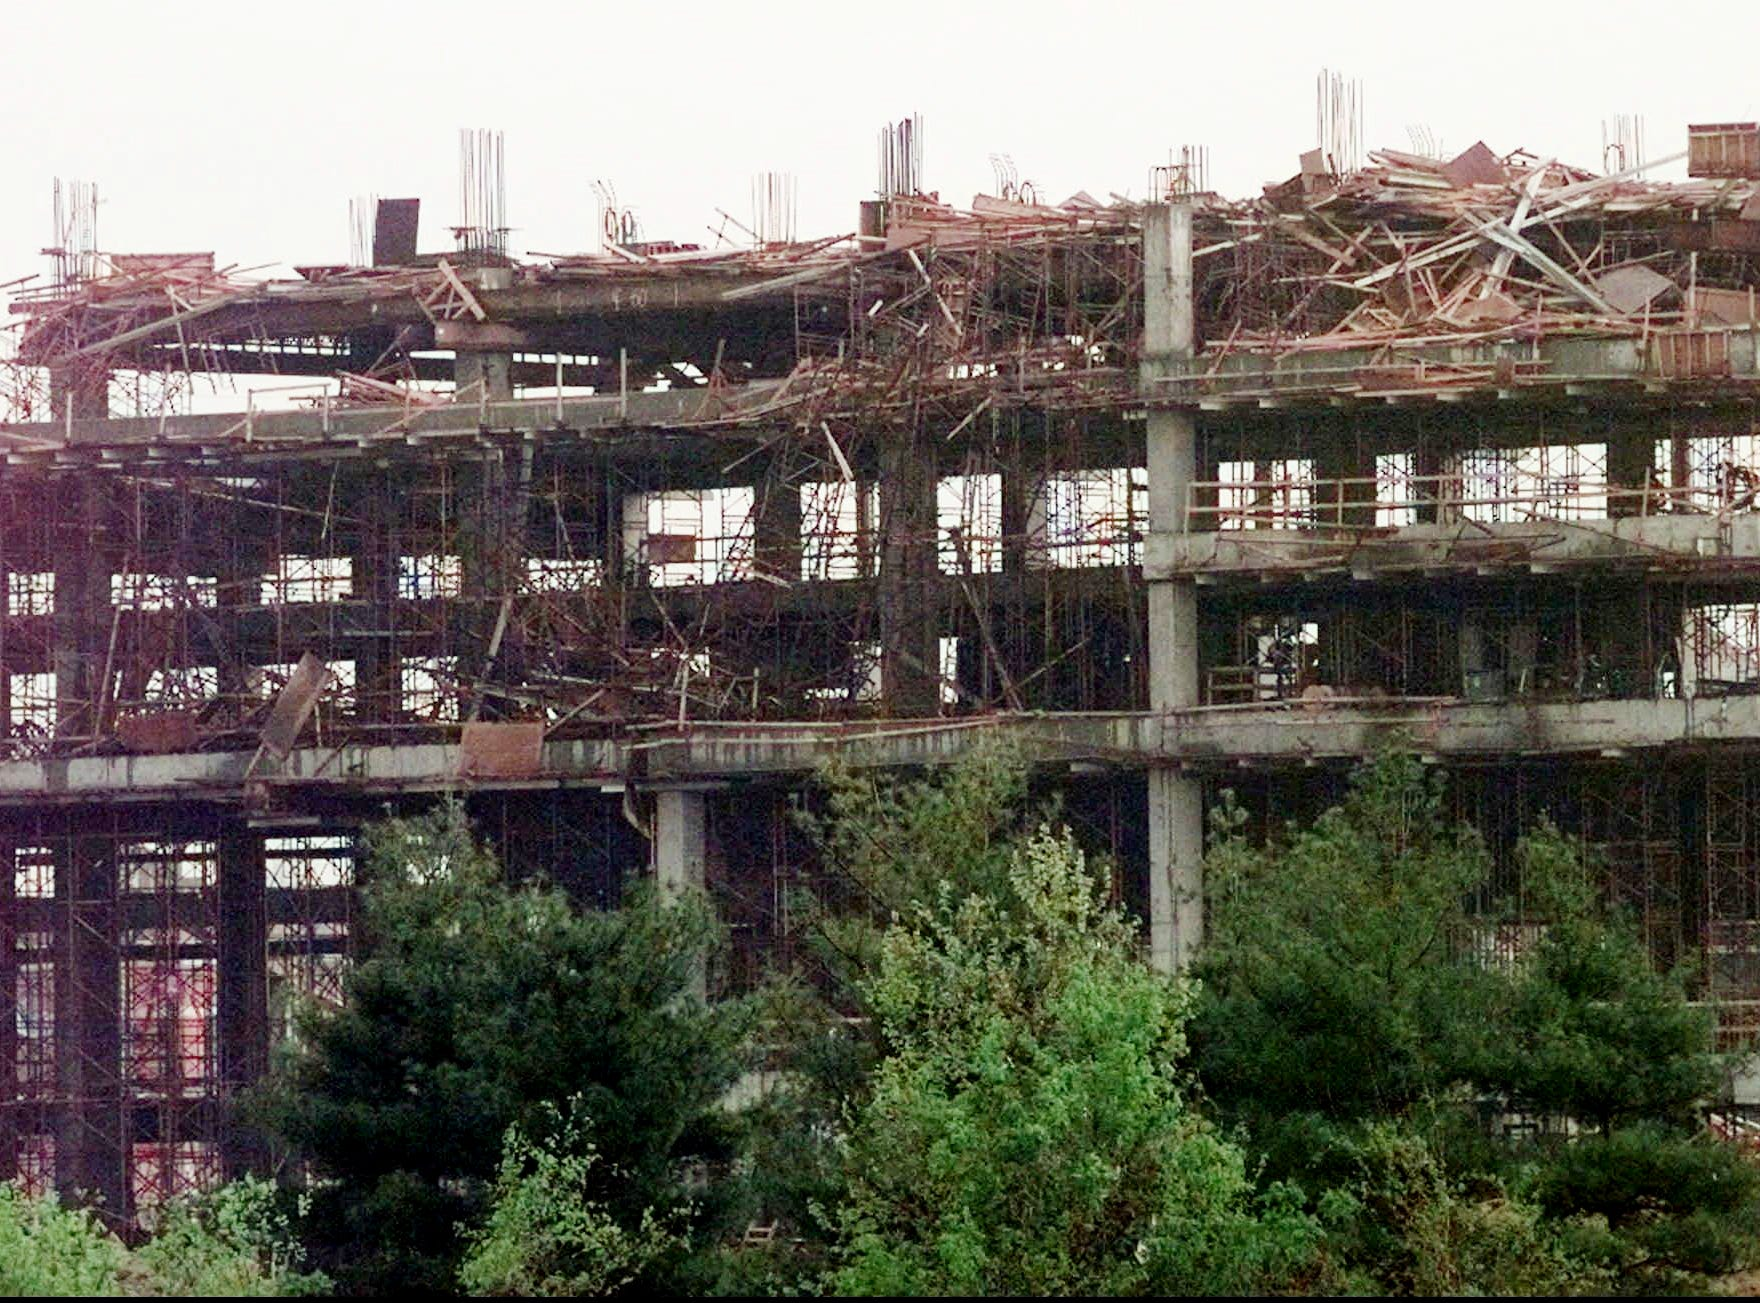 The new stadium for the Tennessee Oilers under construction in Nashville shows damage after a tornado hit April 16, 1998. At least 100 people were reported injured and 300 buildings were damaged as two tornado hit the downtown area.